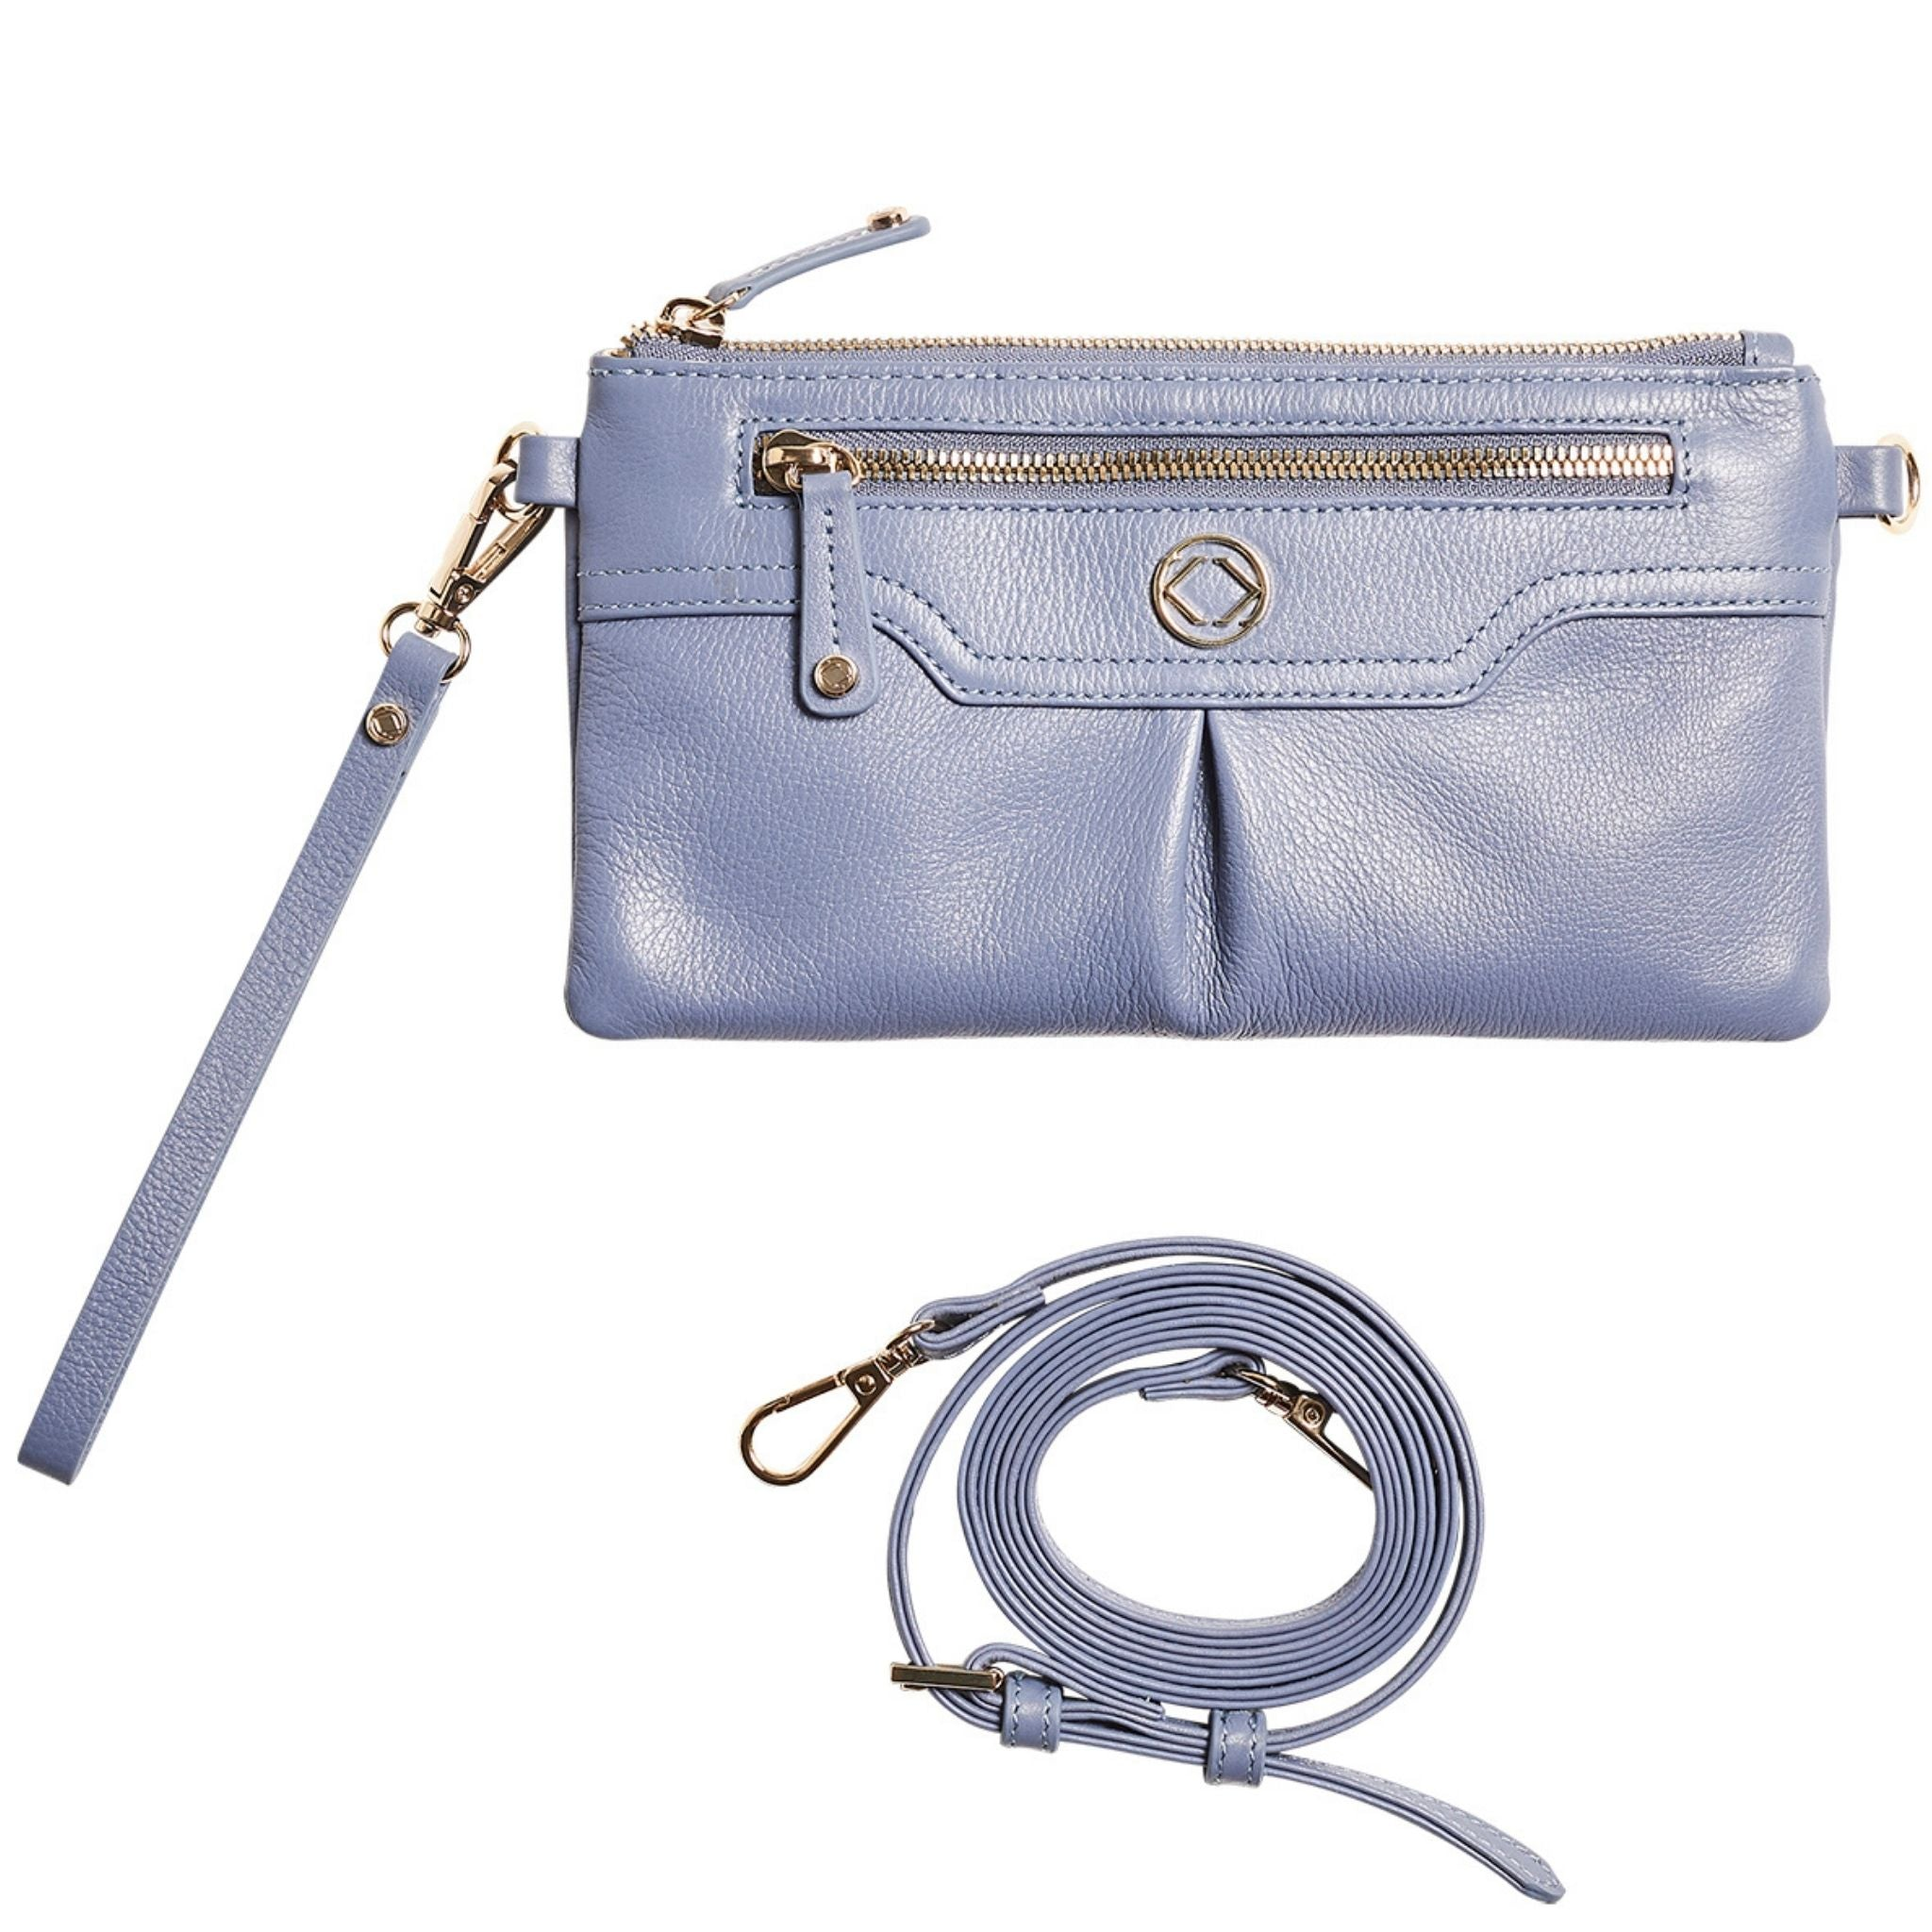 Luxury designer Teddy vintage blue leather organiser crossbody clutch